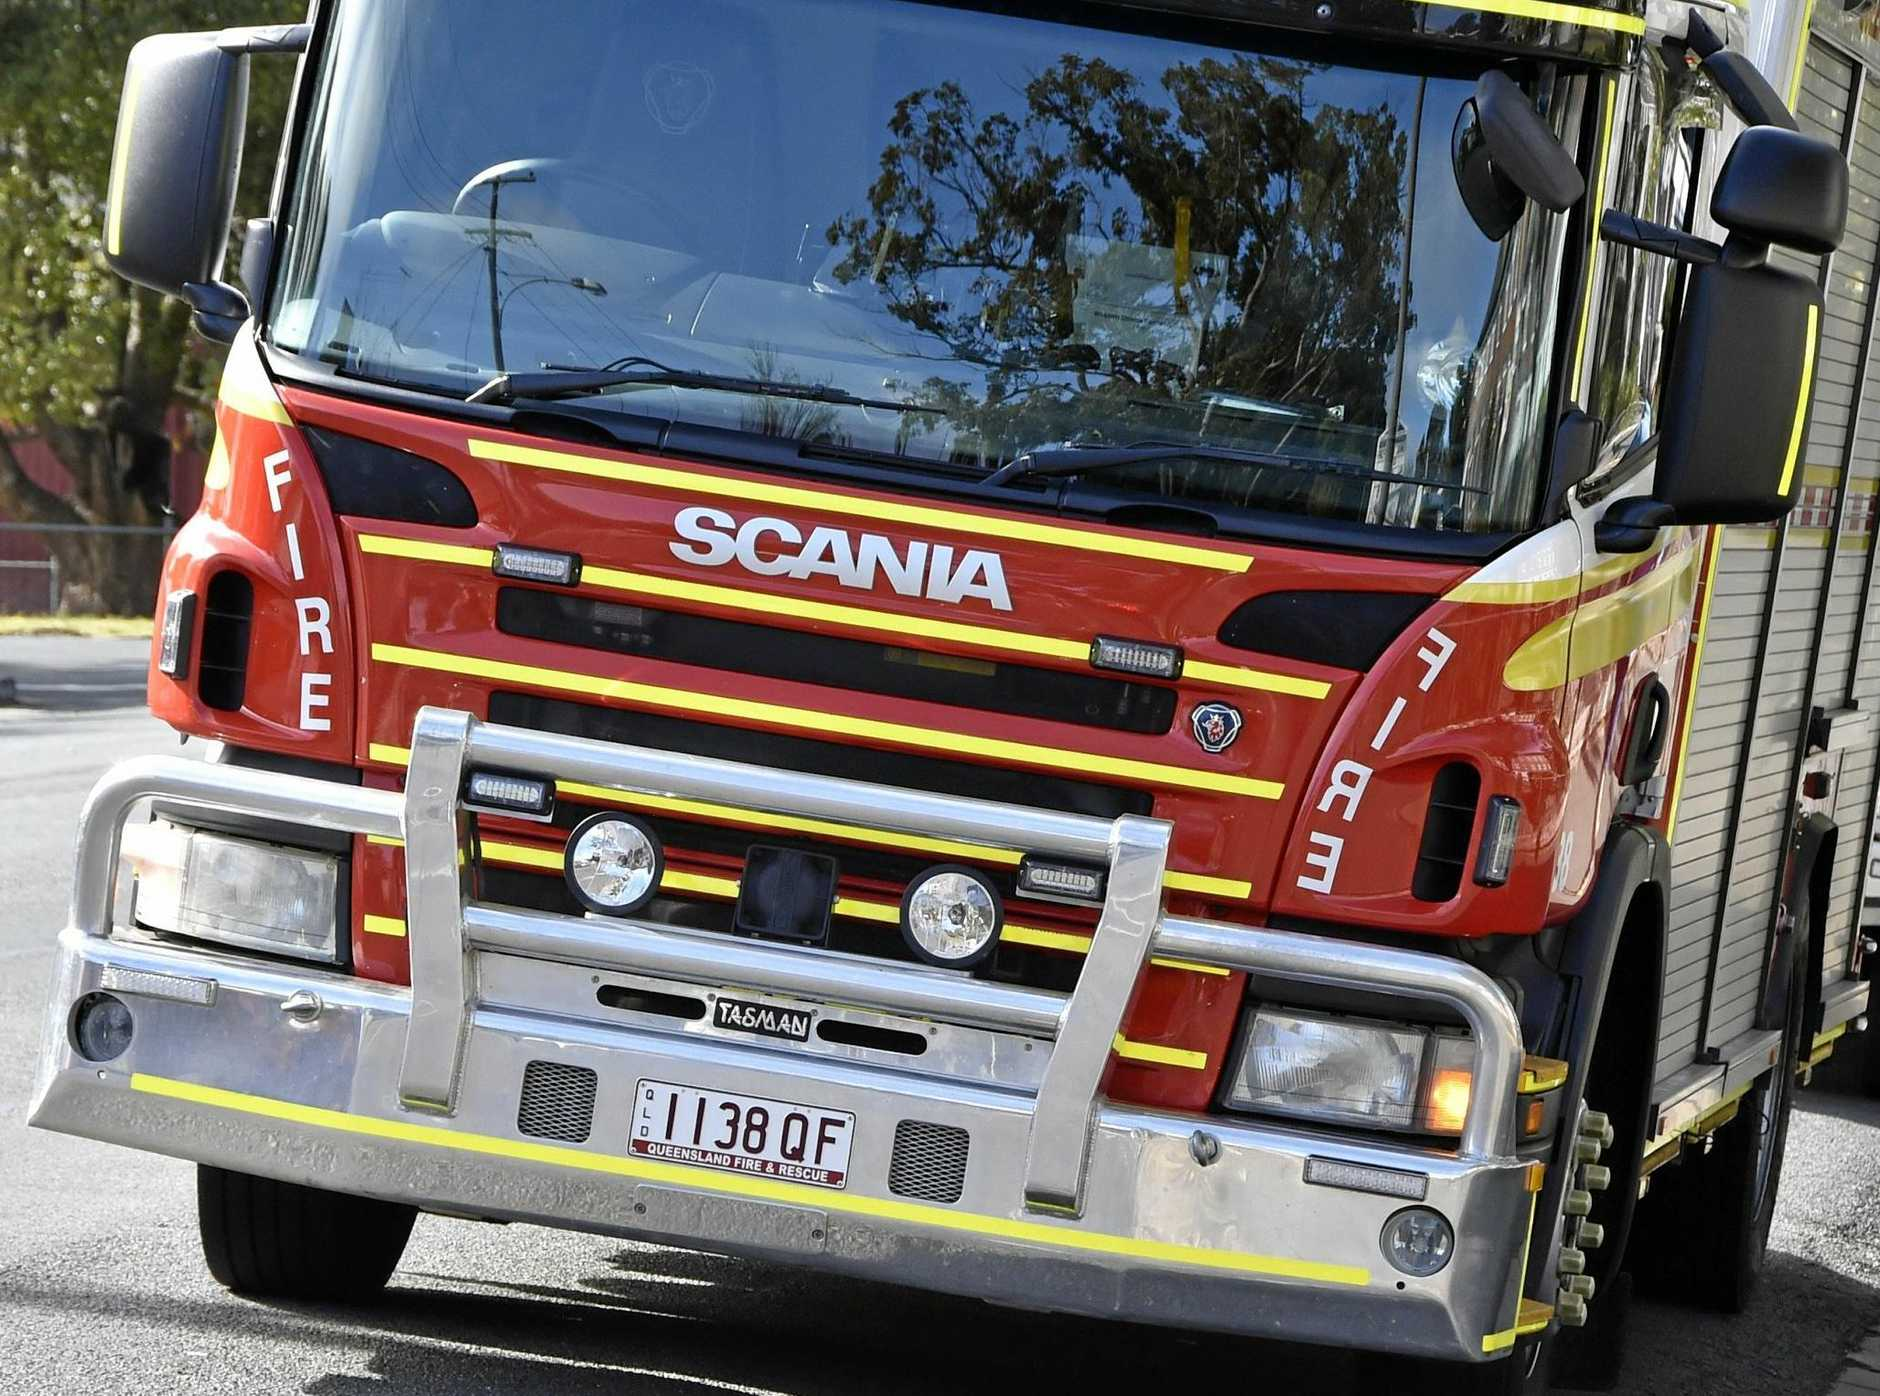 Emergency Services are on scene at Lyons Street to contain a gas leak.